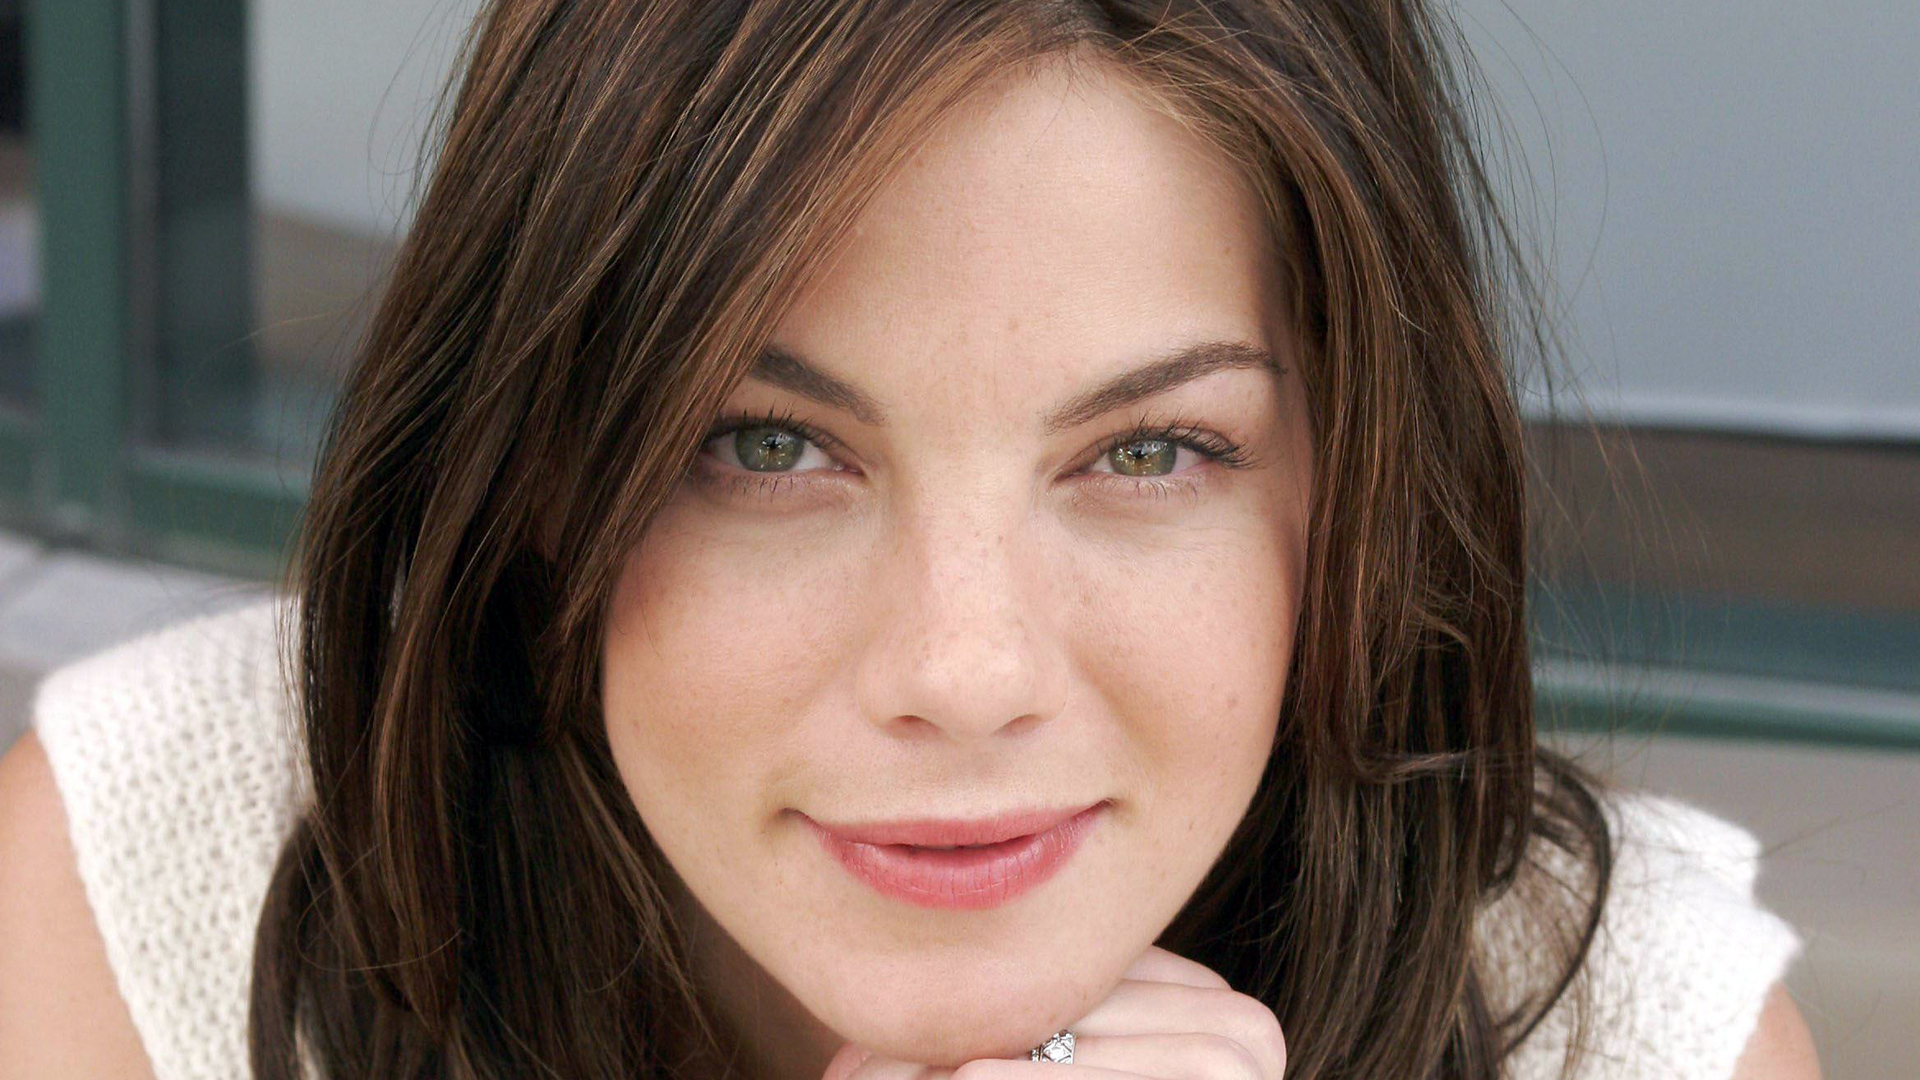 Hollywood Party Invitations further Jeff Vespa Getty Images moreover Genesis additionally Top Five Michelle Monaghan Films together with 12747 Samantha Morton. on oscars 2012 date